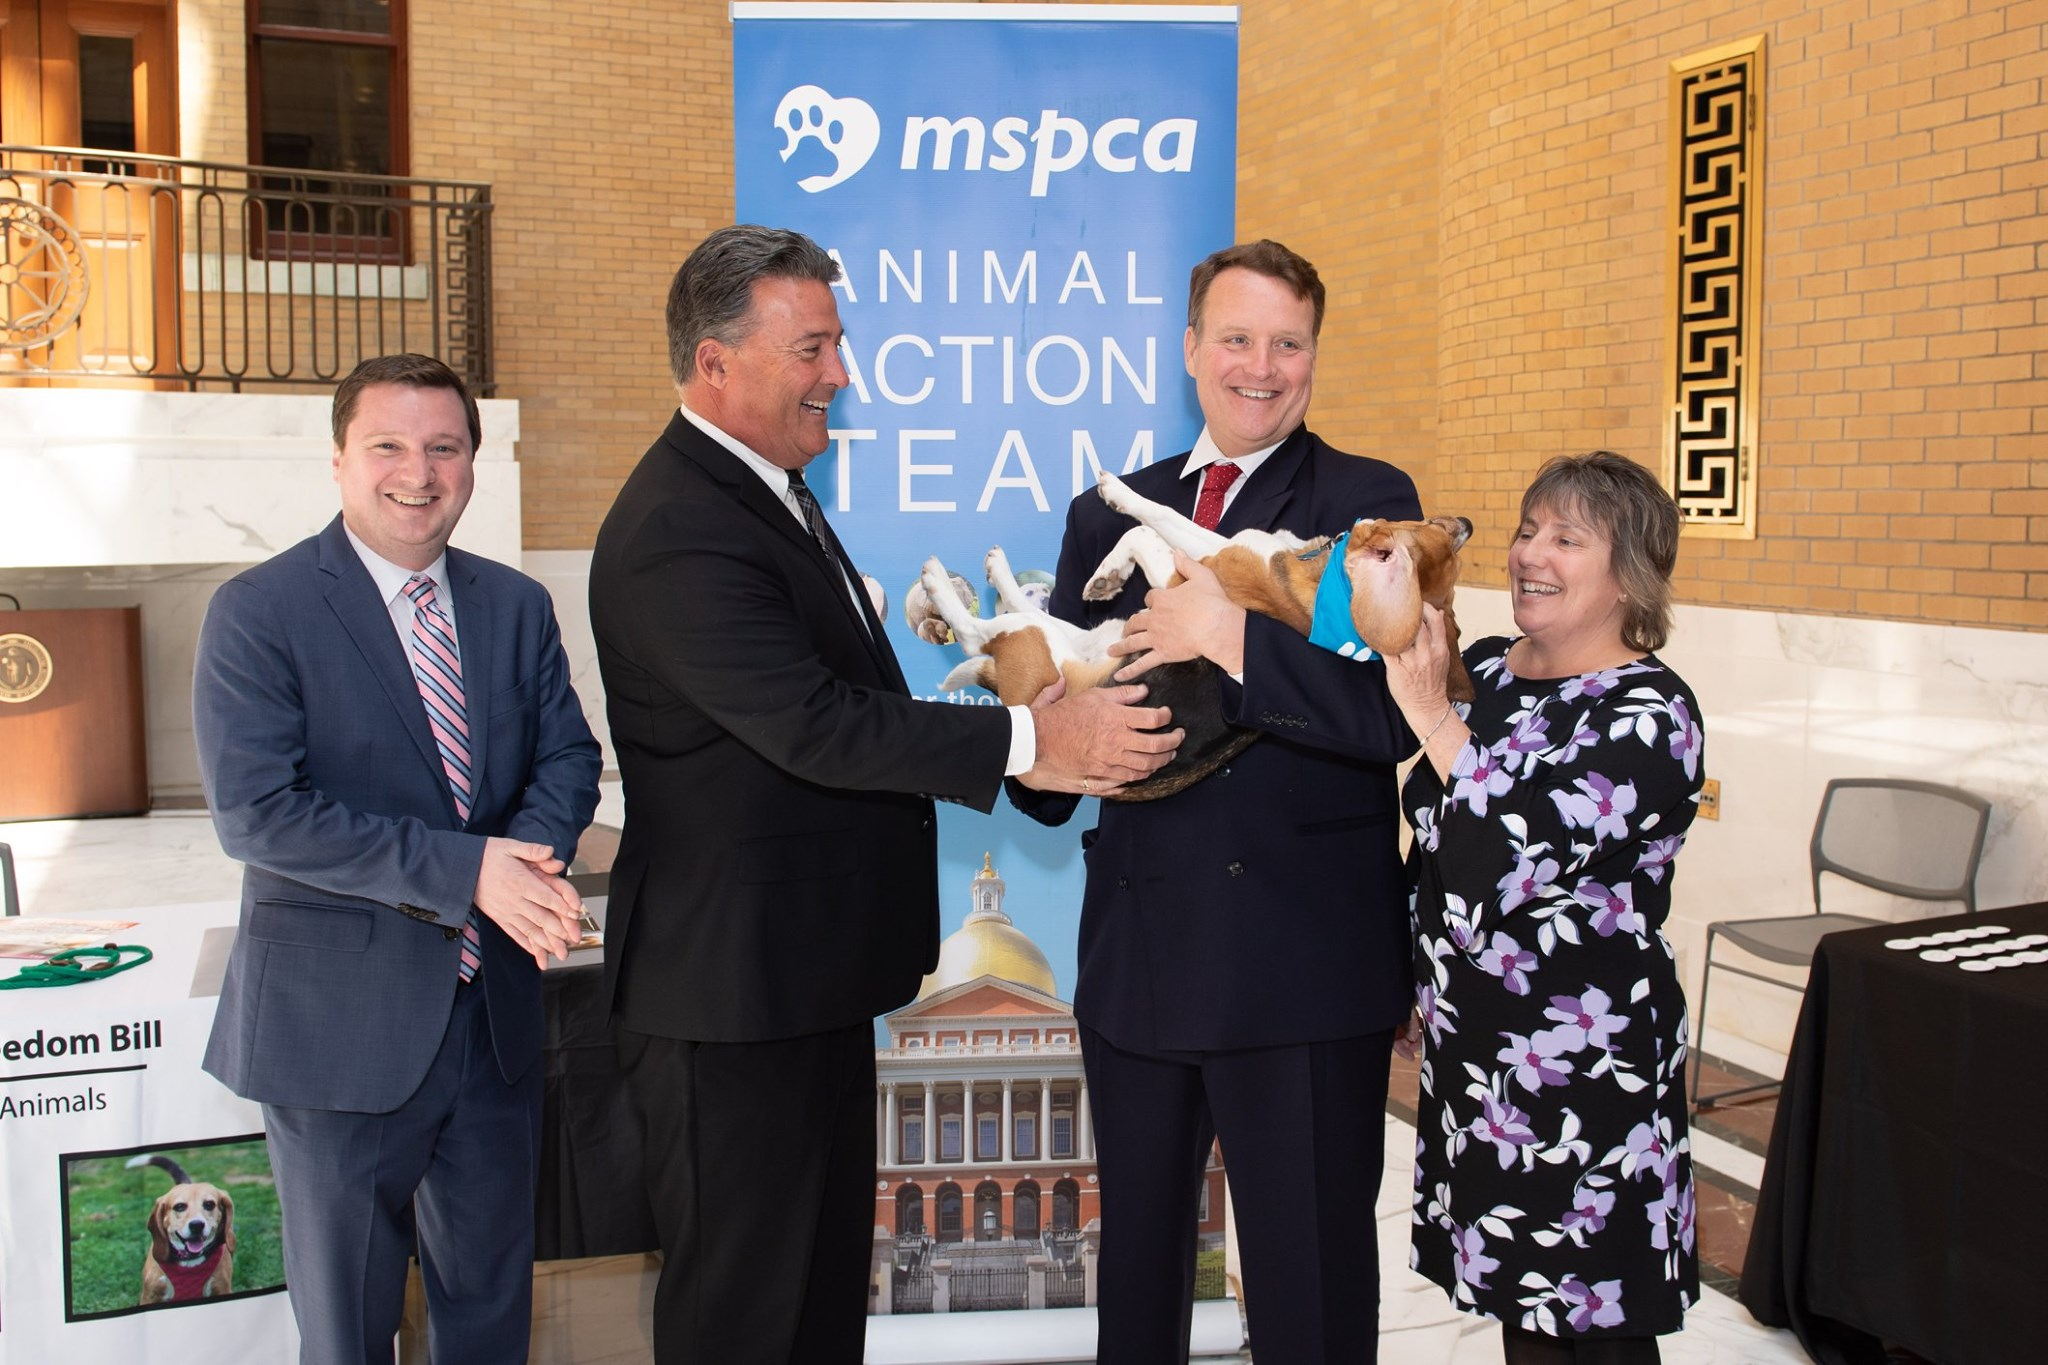 Pictured (L-R): Senators Patrick M. O'Connor (R-Weymouth), Mark C. Montigny (D-New Bedford), Senator Michael O. Moore (D-Millbury) and Senator Anne M. Gobi (D-Spencer) with the retired research beagle named Louie.